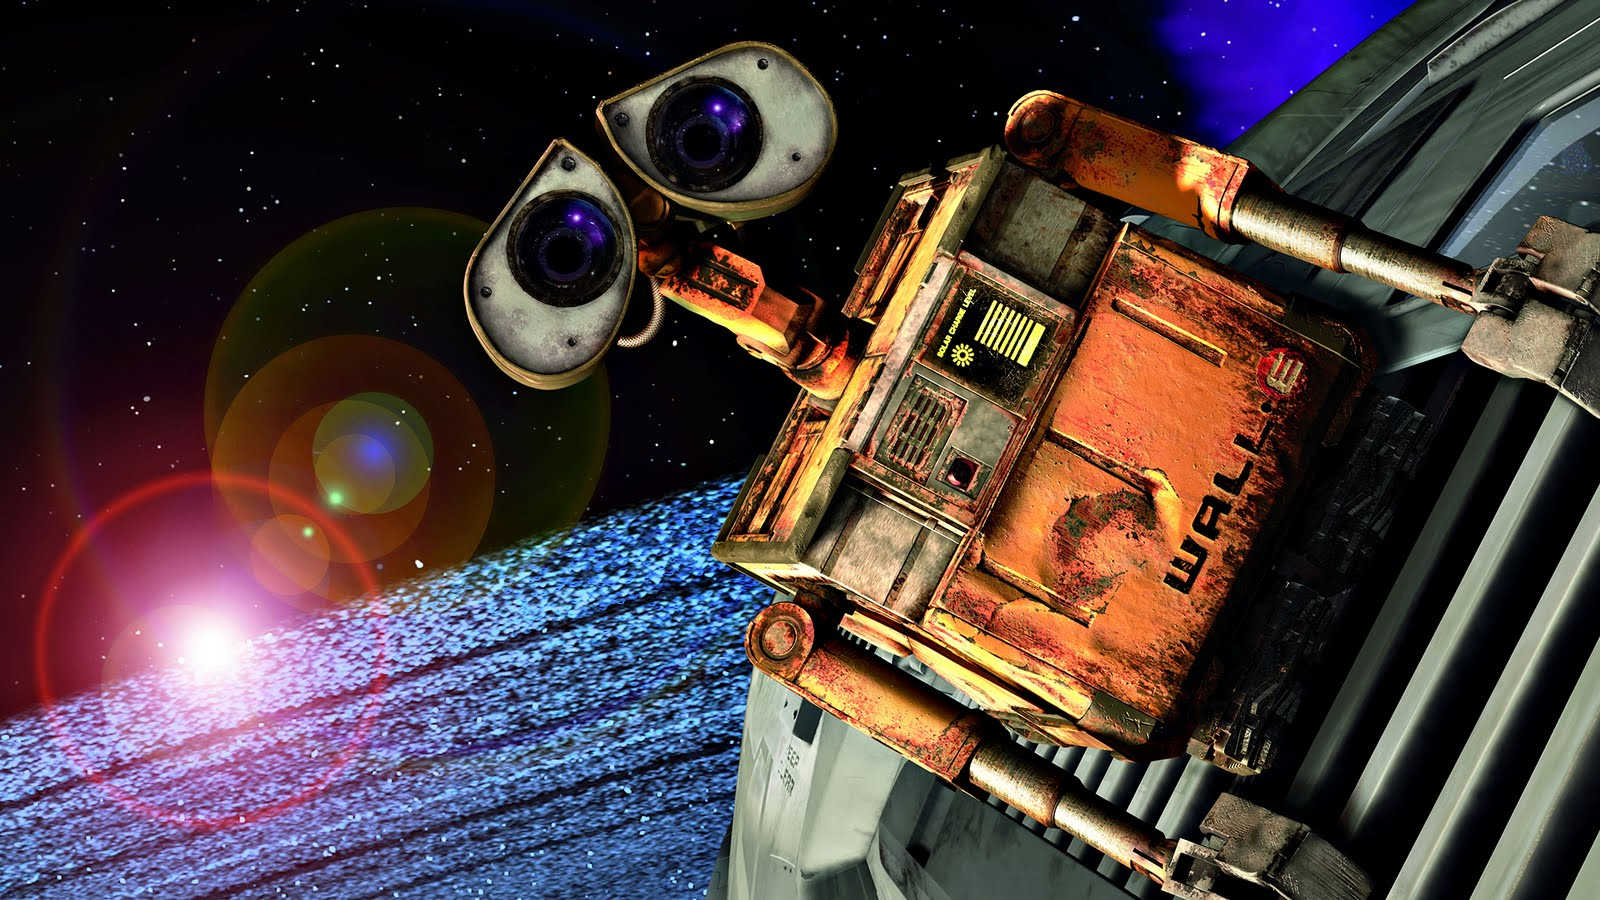 wallpaper: wall-e - cutest robot in universe hd wallpaper